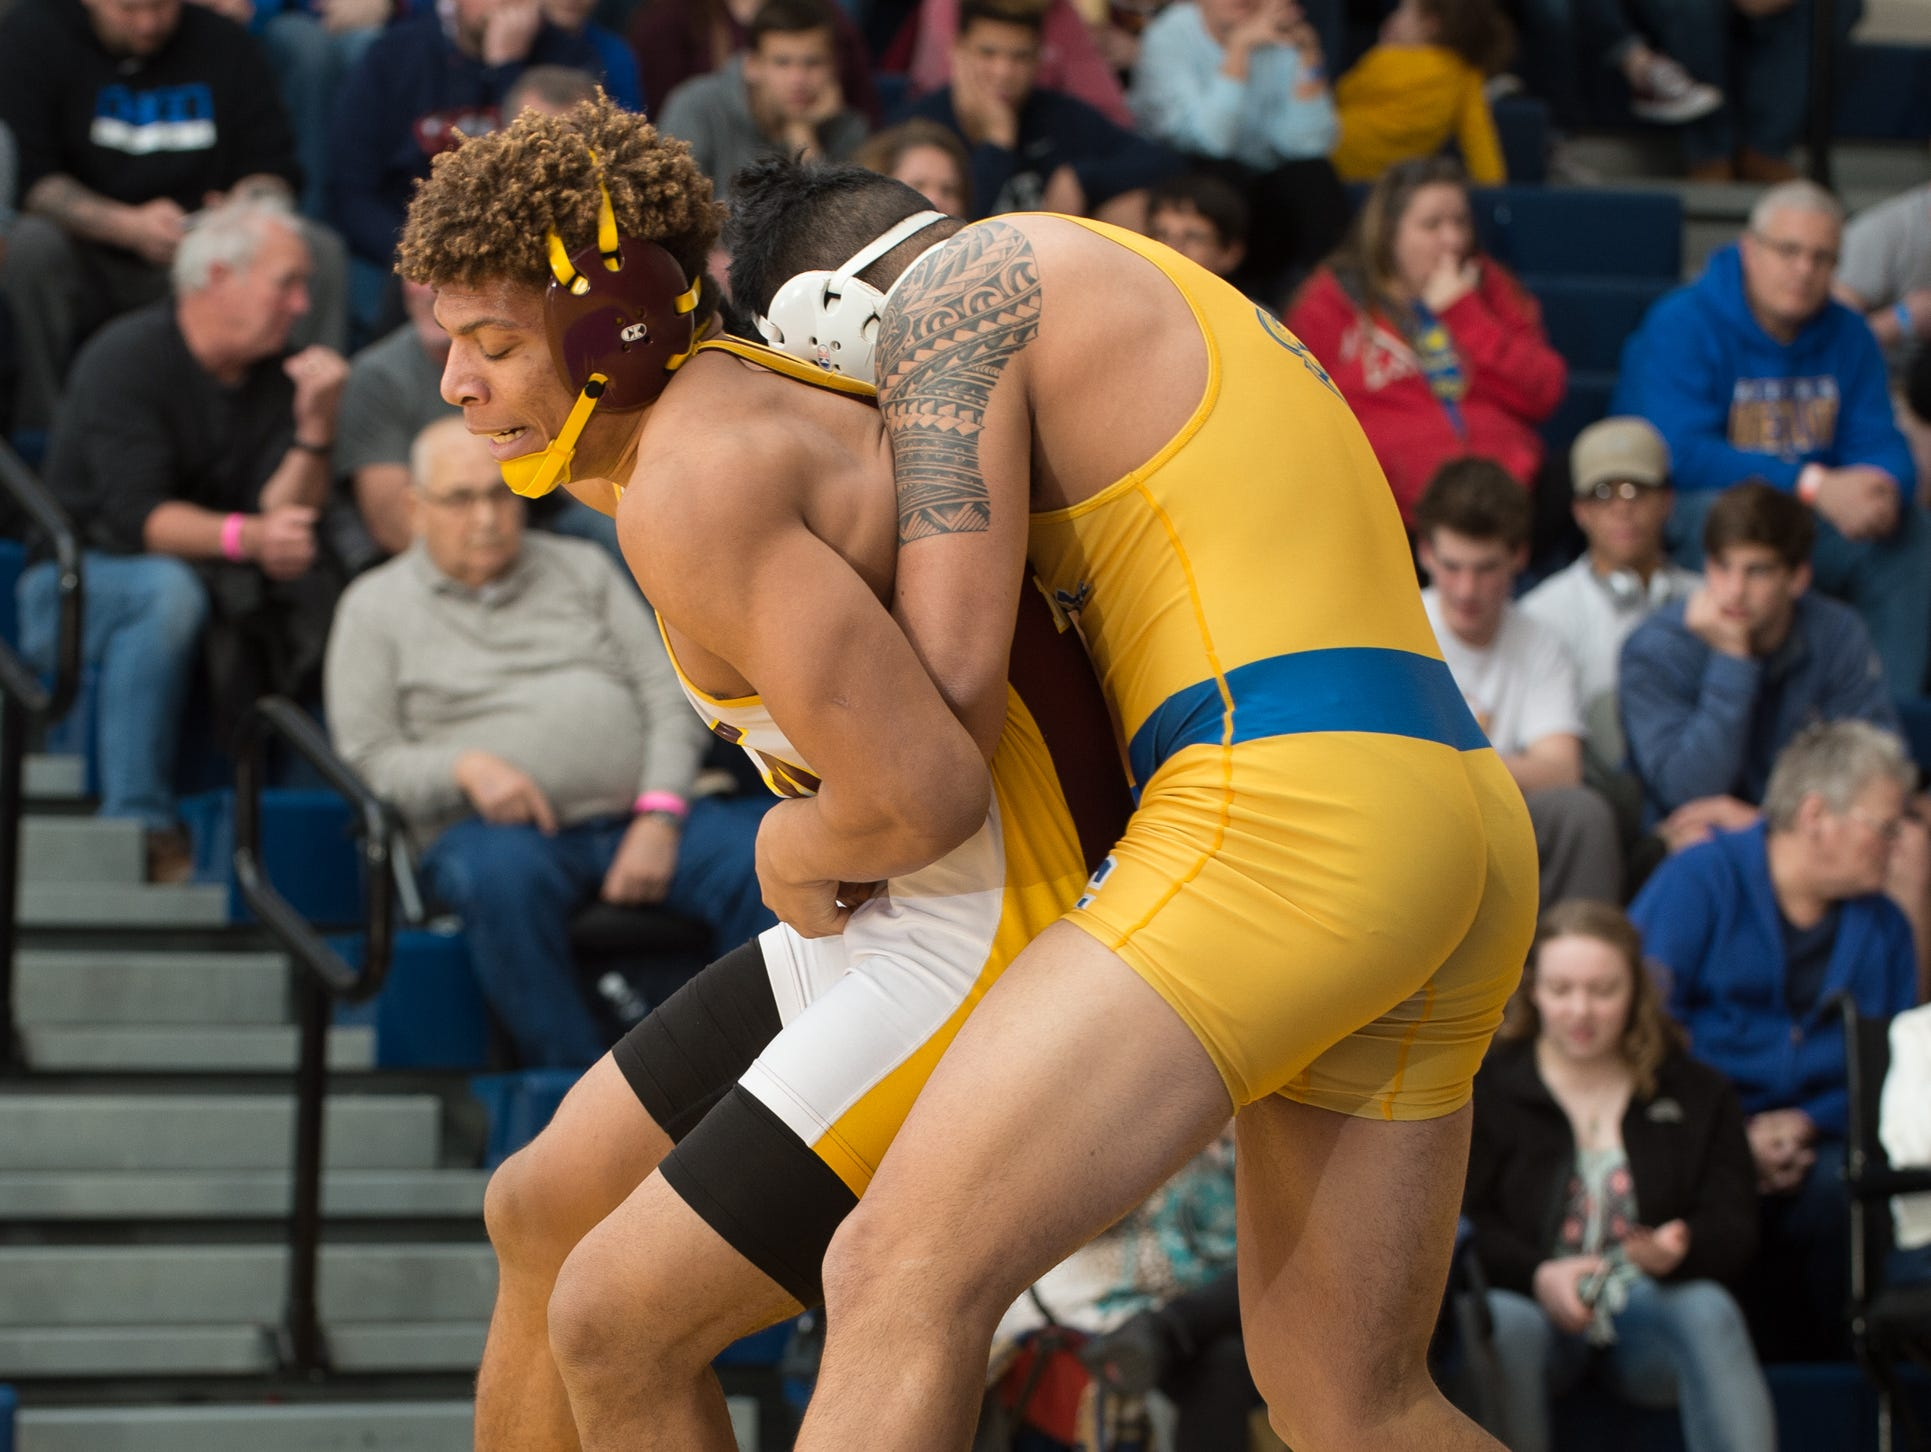 Milford's Dominic Covington, left, works to get out of a hold by Sussex Central's Johnny Morris battle in the 220 pound championship match at the Henlopen Conference wrestling tournament at Sussex Central High School.